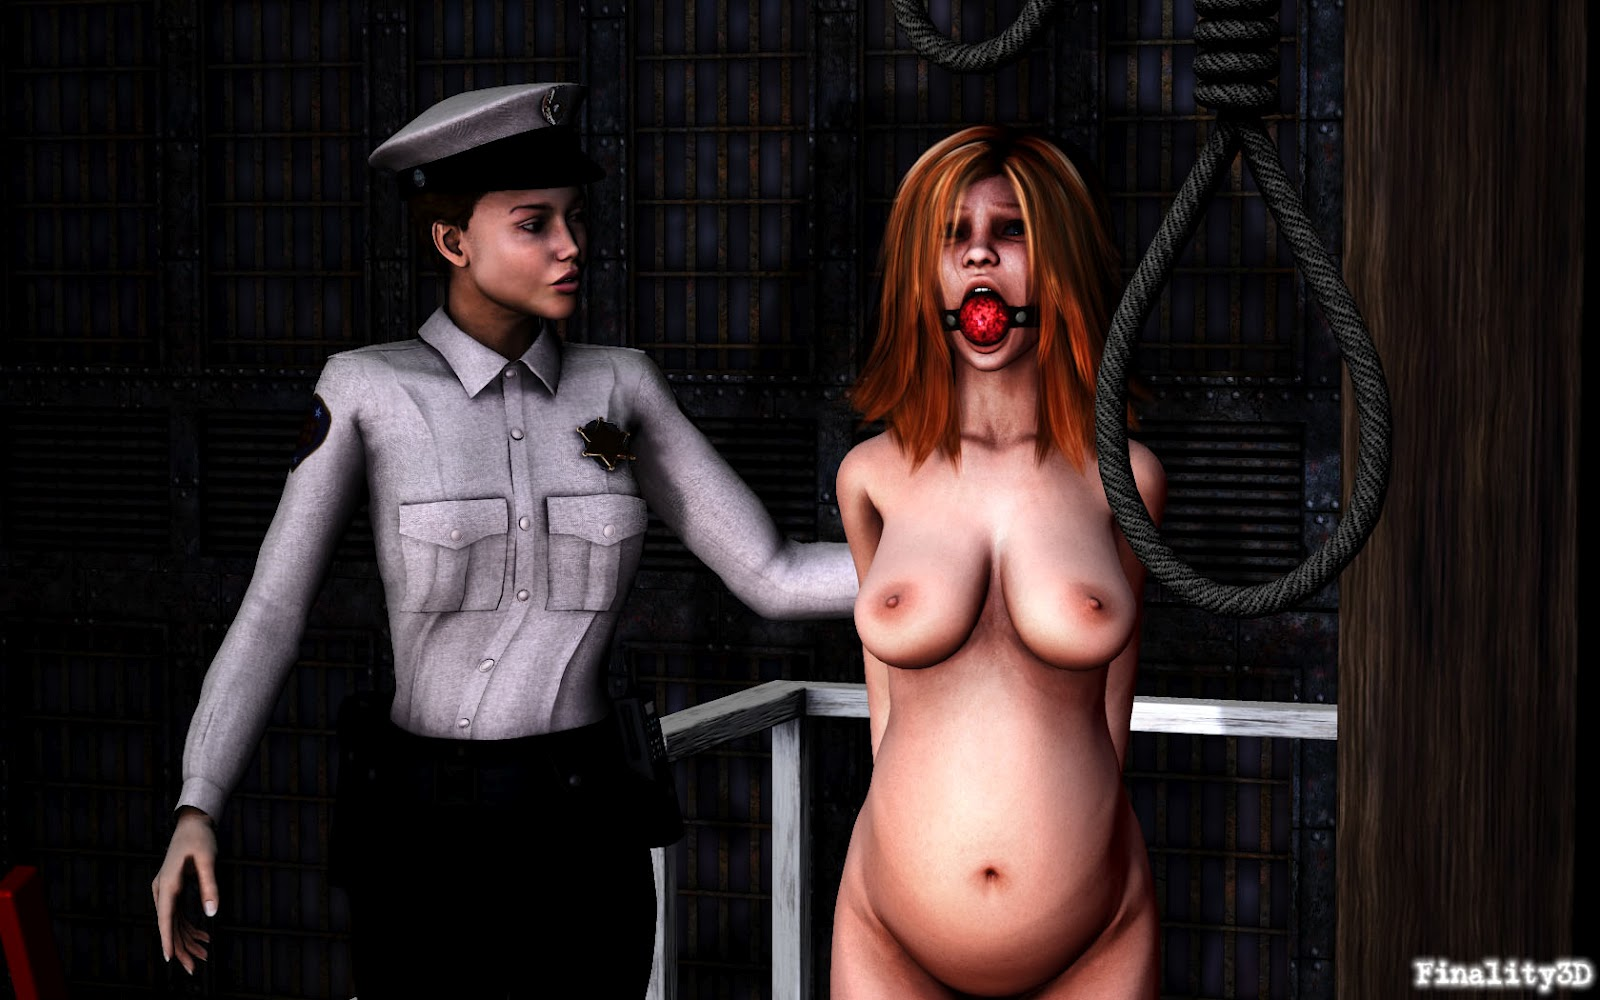 Execution erotic fantasy smut clips